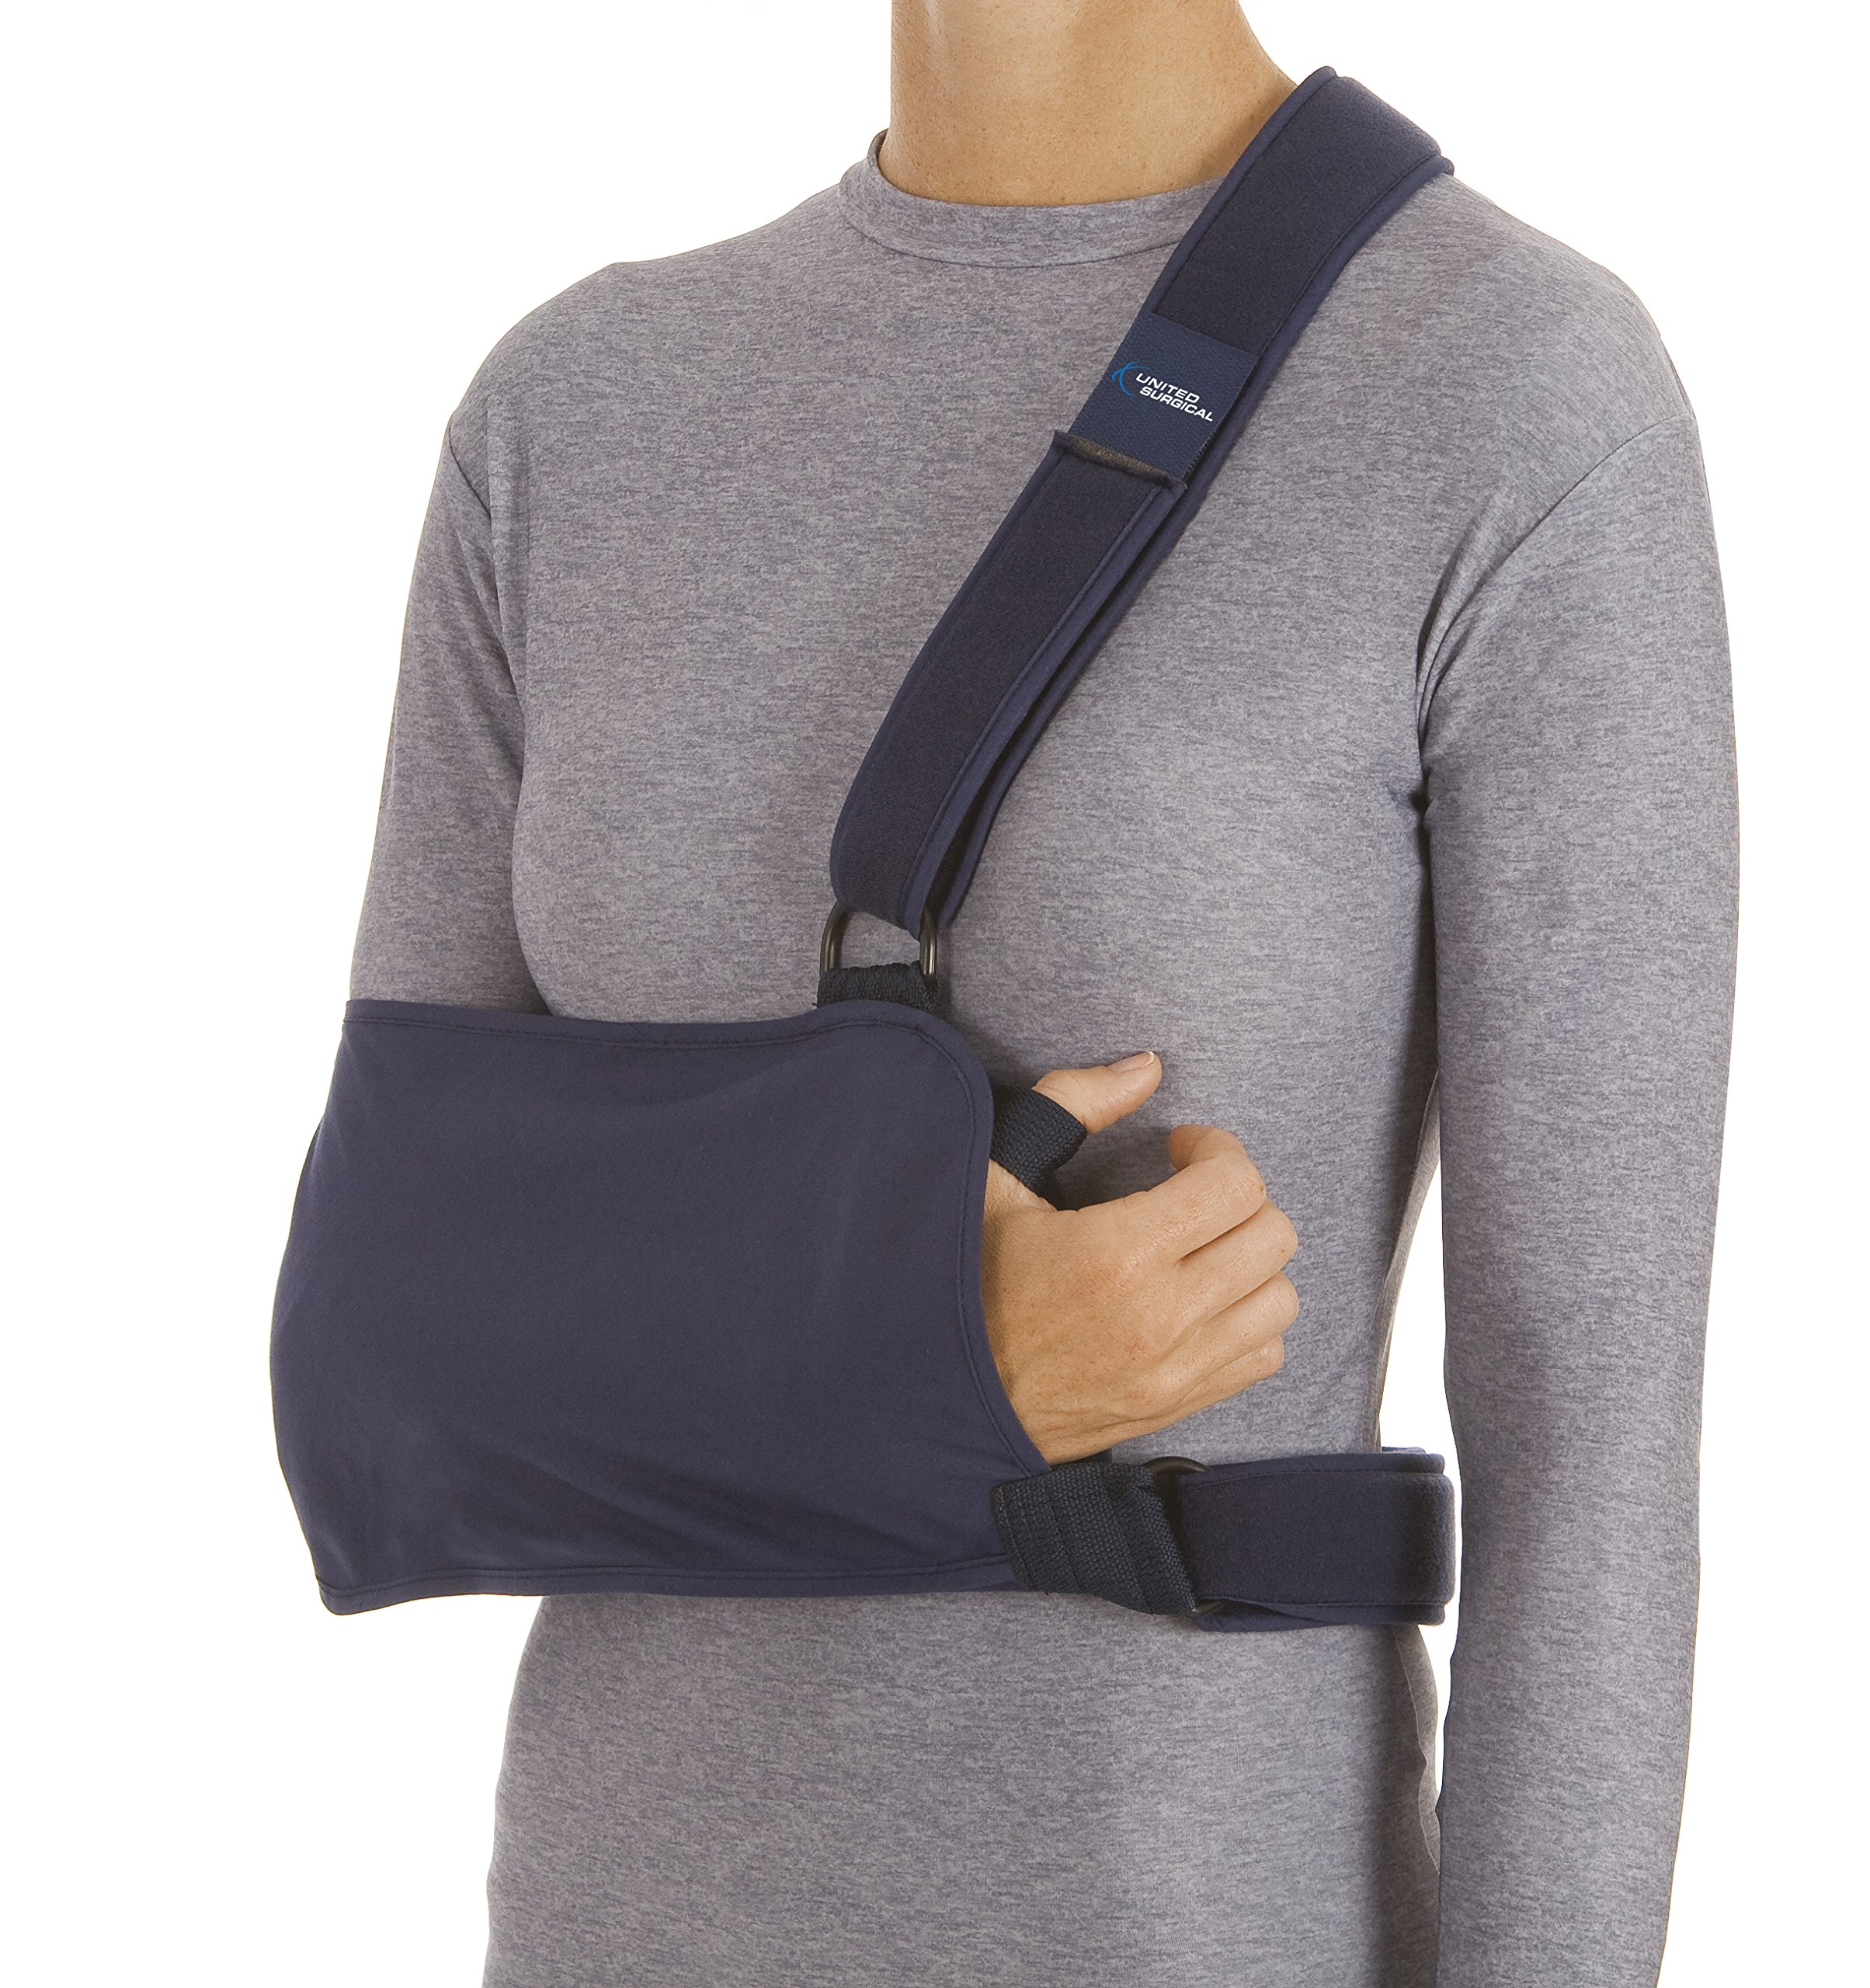 Amazon Com Shoulder Immobilizer Sling Cotton Poly Right